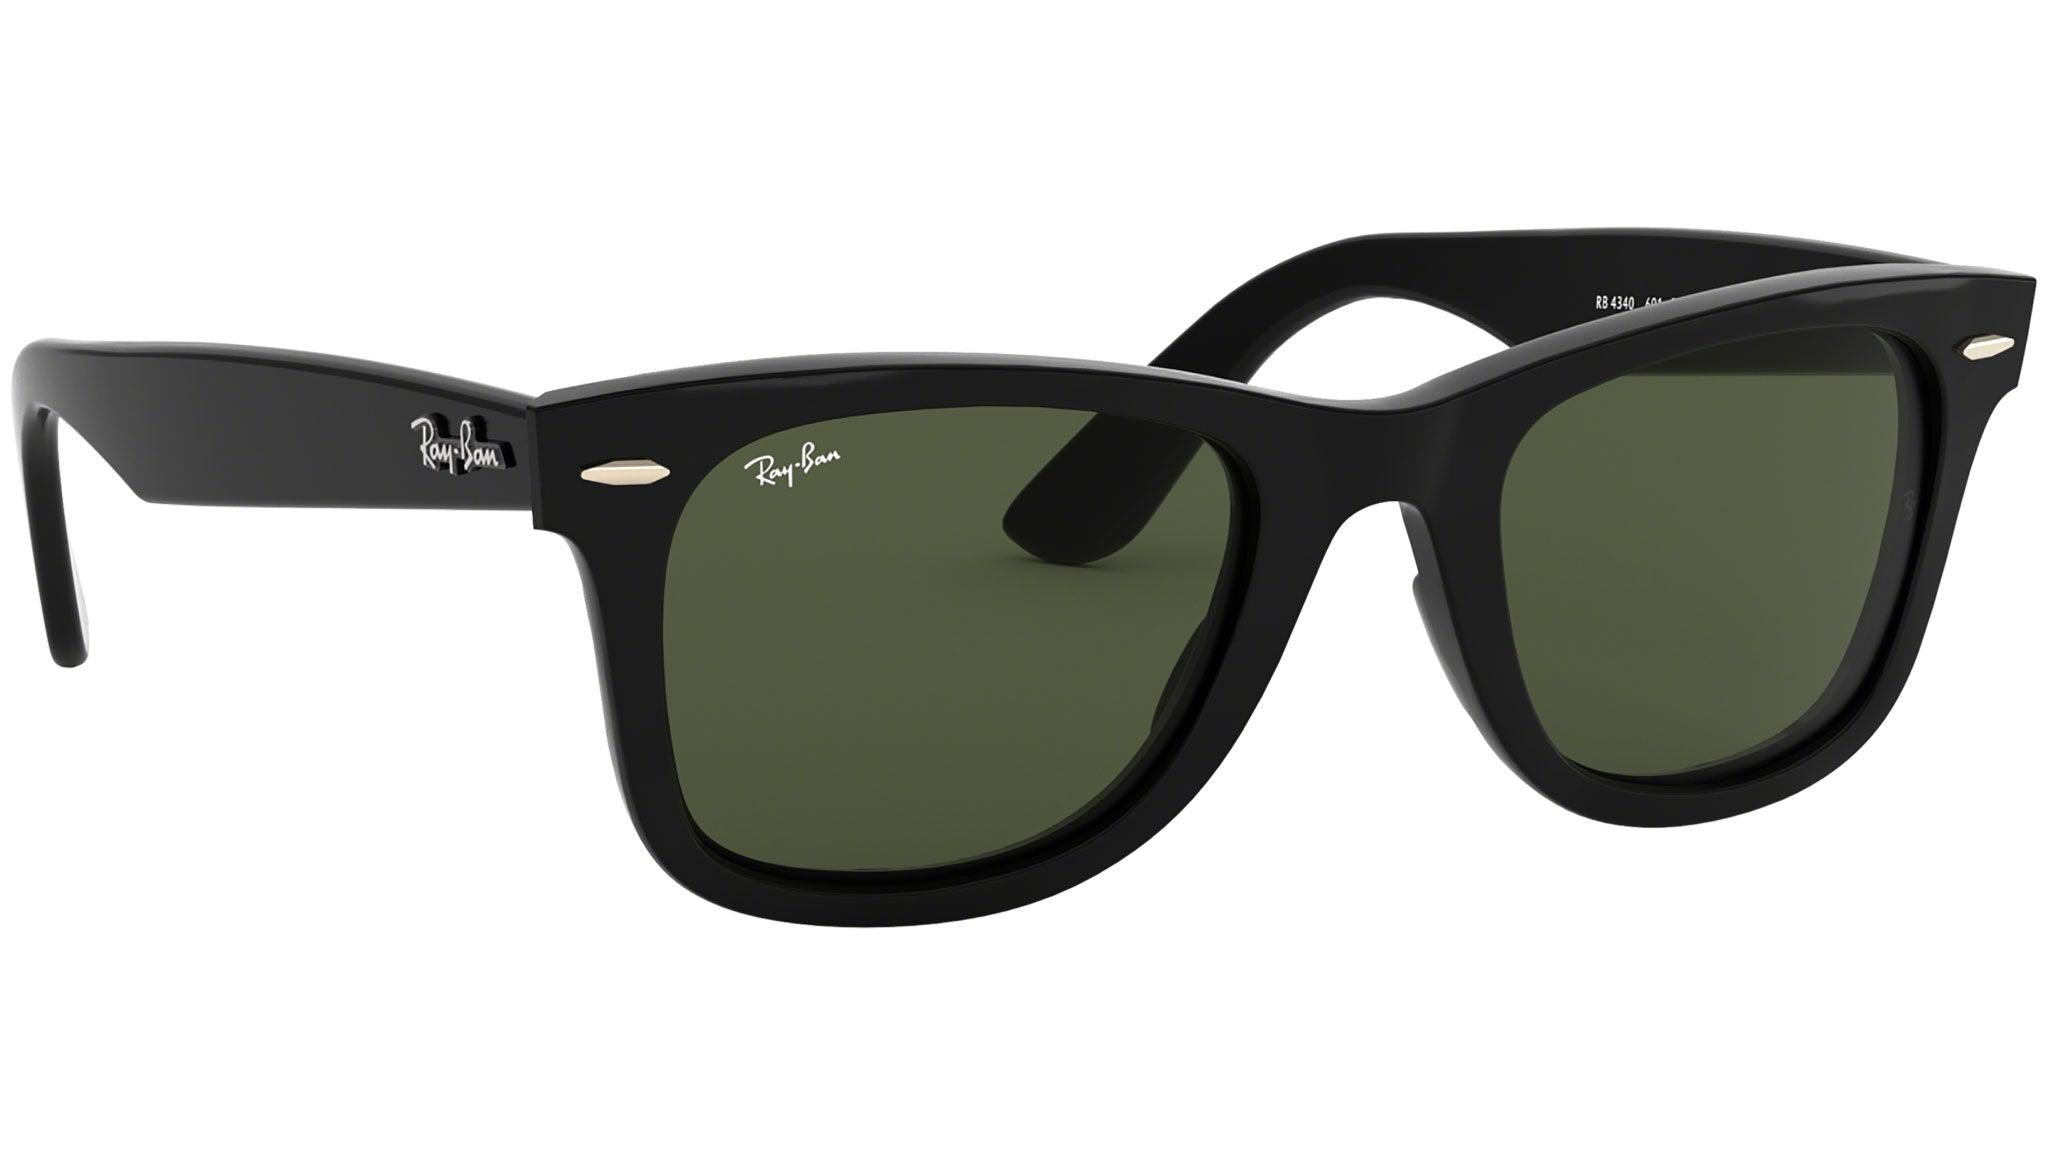 Wayfarer Ease RB4340 black